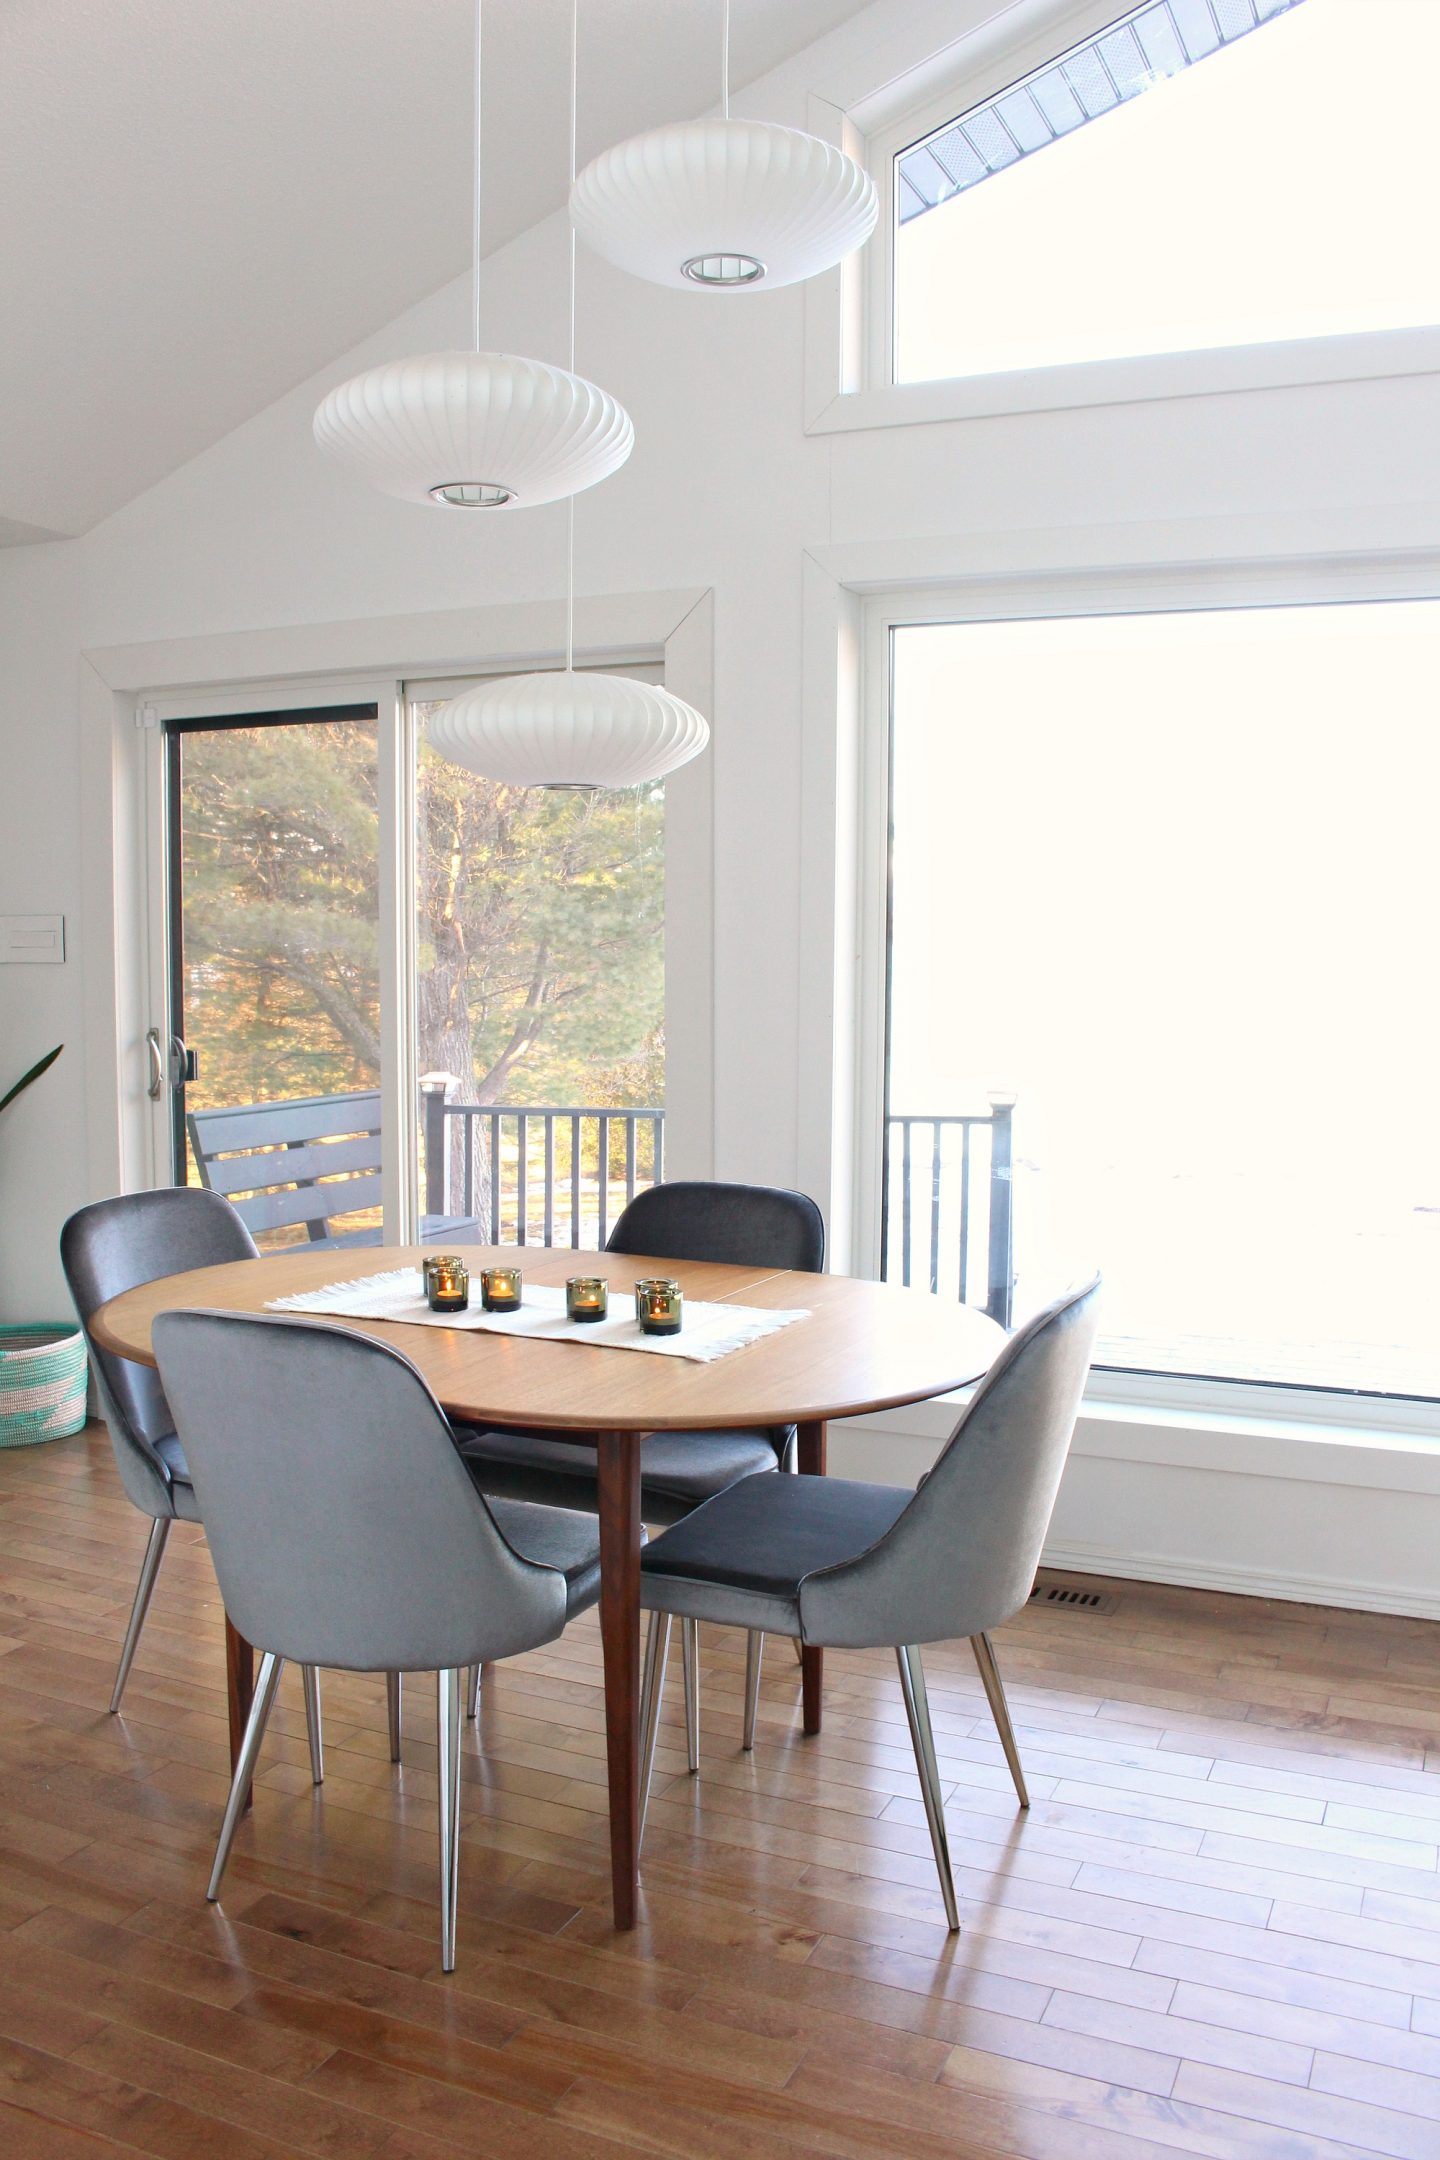 New Grey Velvet Dining Chairs 10 Affordable Mid Century Modern Inspired Dining Chairs Dans Le Lakehouse